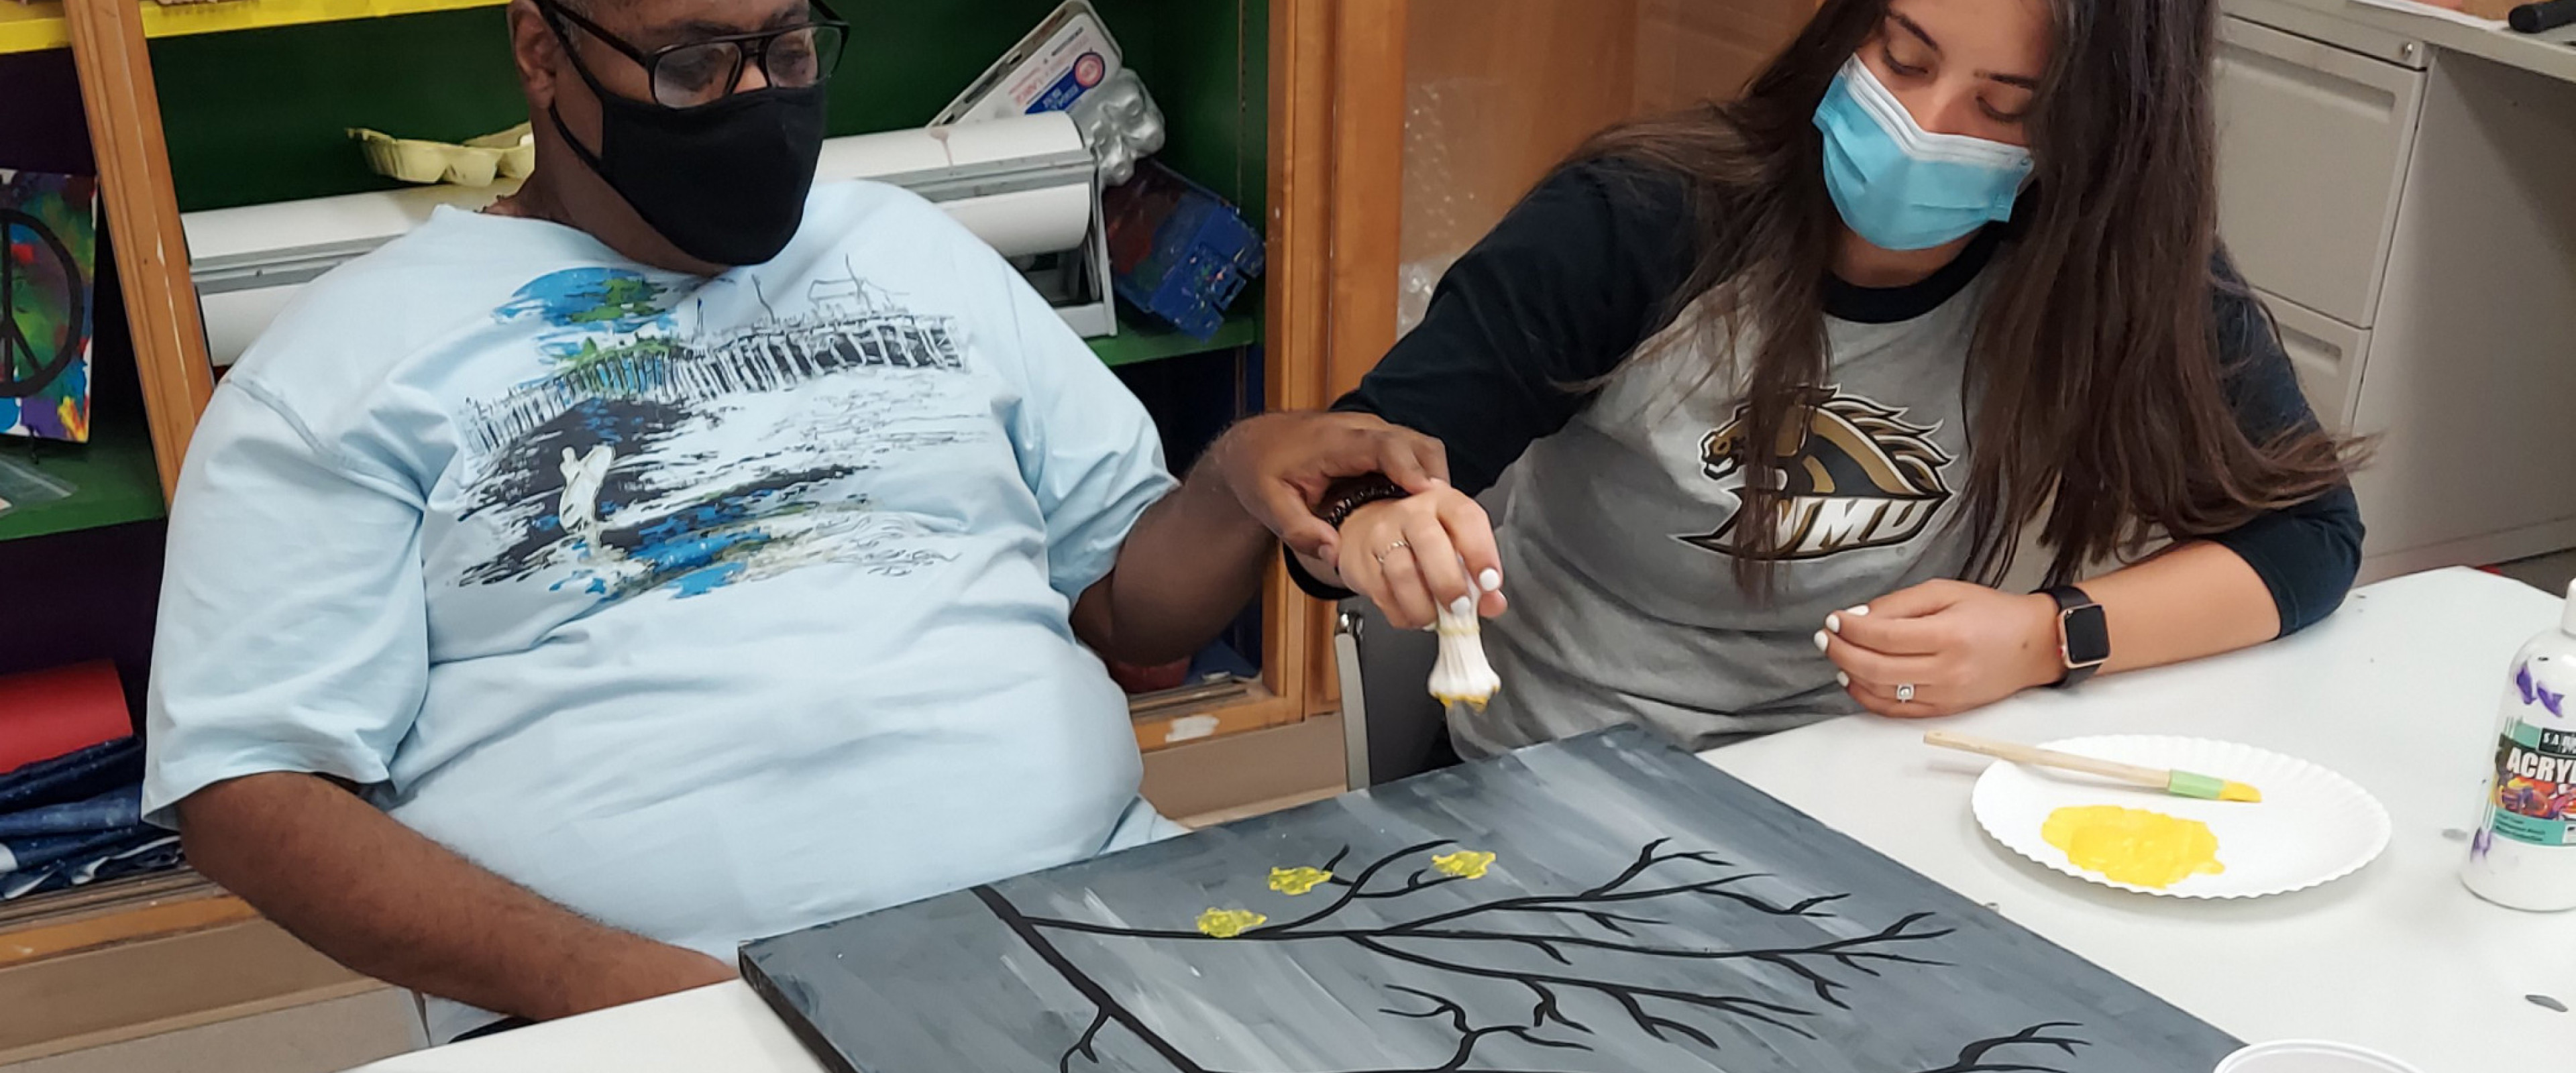 WMU student and participant painting together